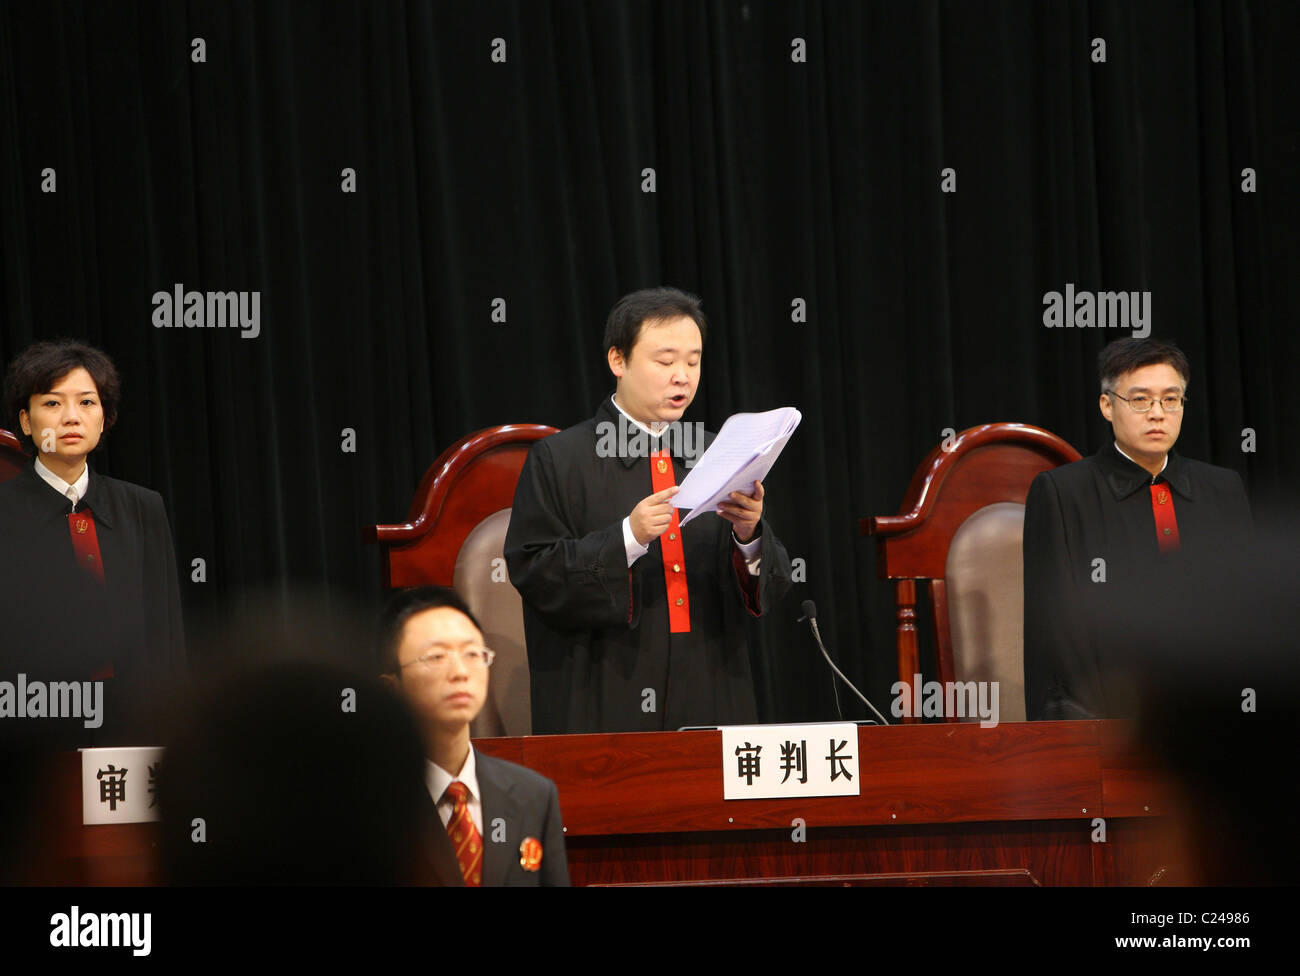 Chief justice announces the sentences of Xie Caiping and her accomplices at the Chongqing No. 5 Intermediate People's - Stock Image